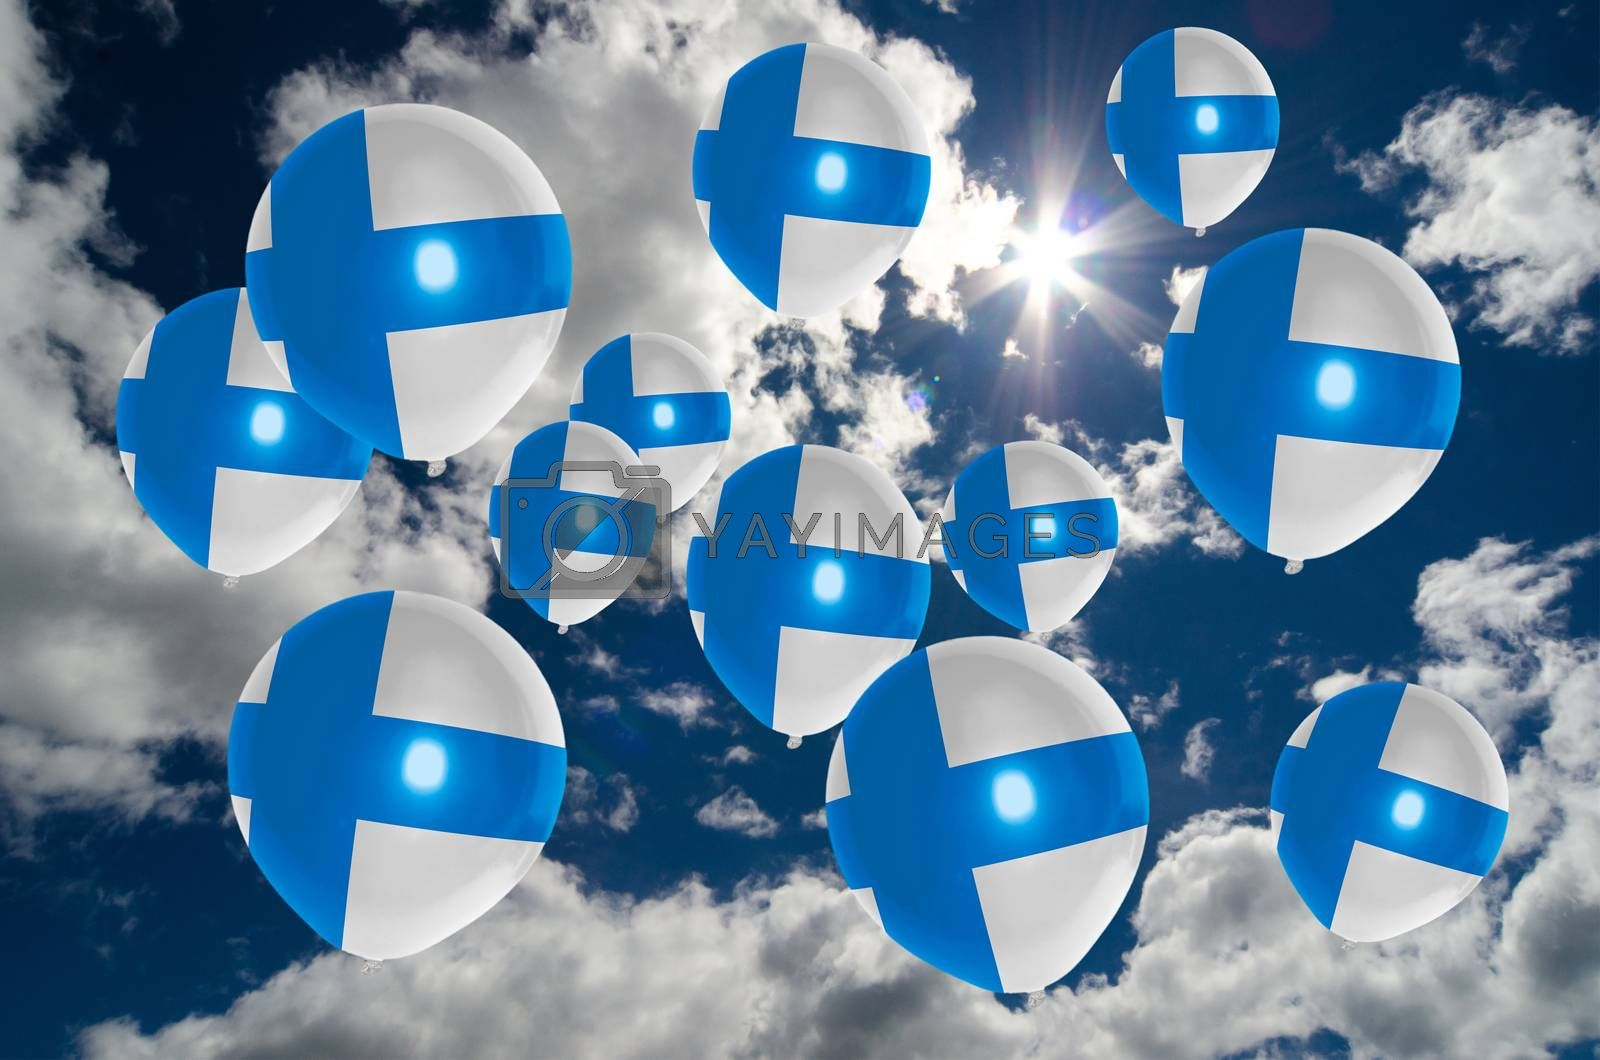 many ballons in colors of finland flag flying on sky